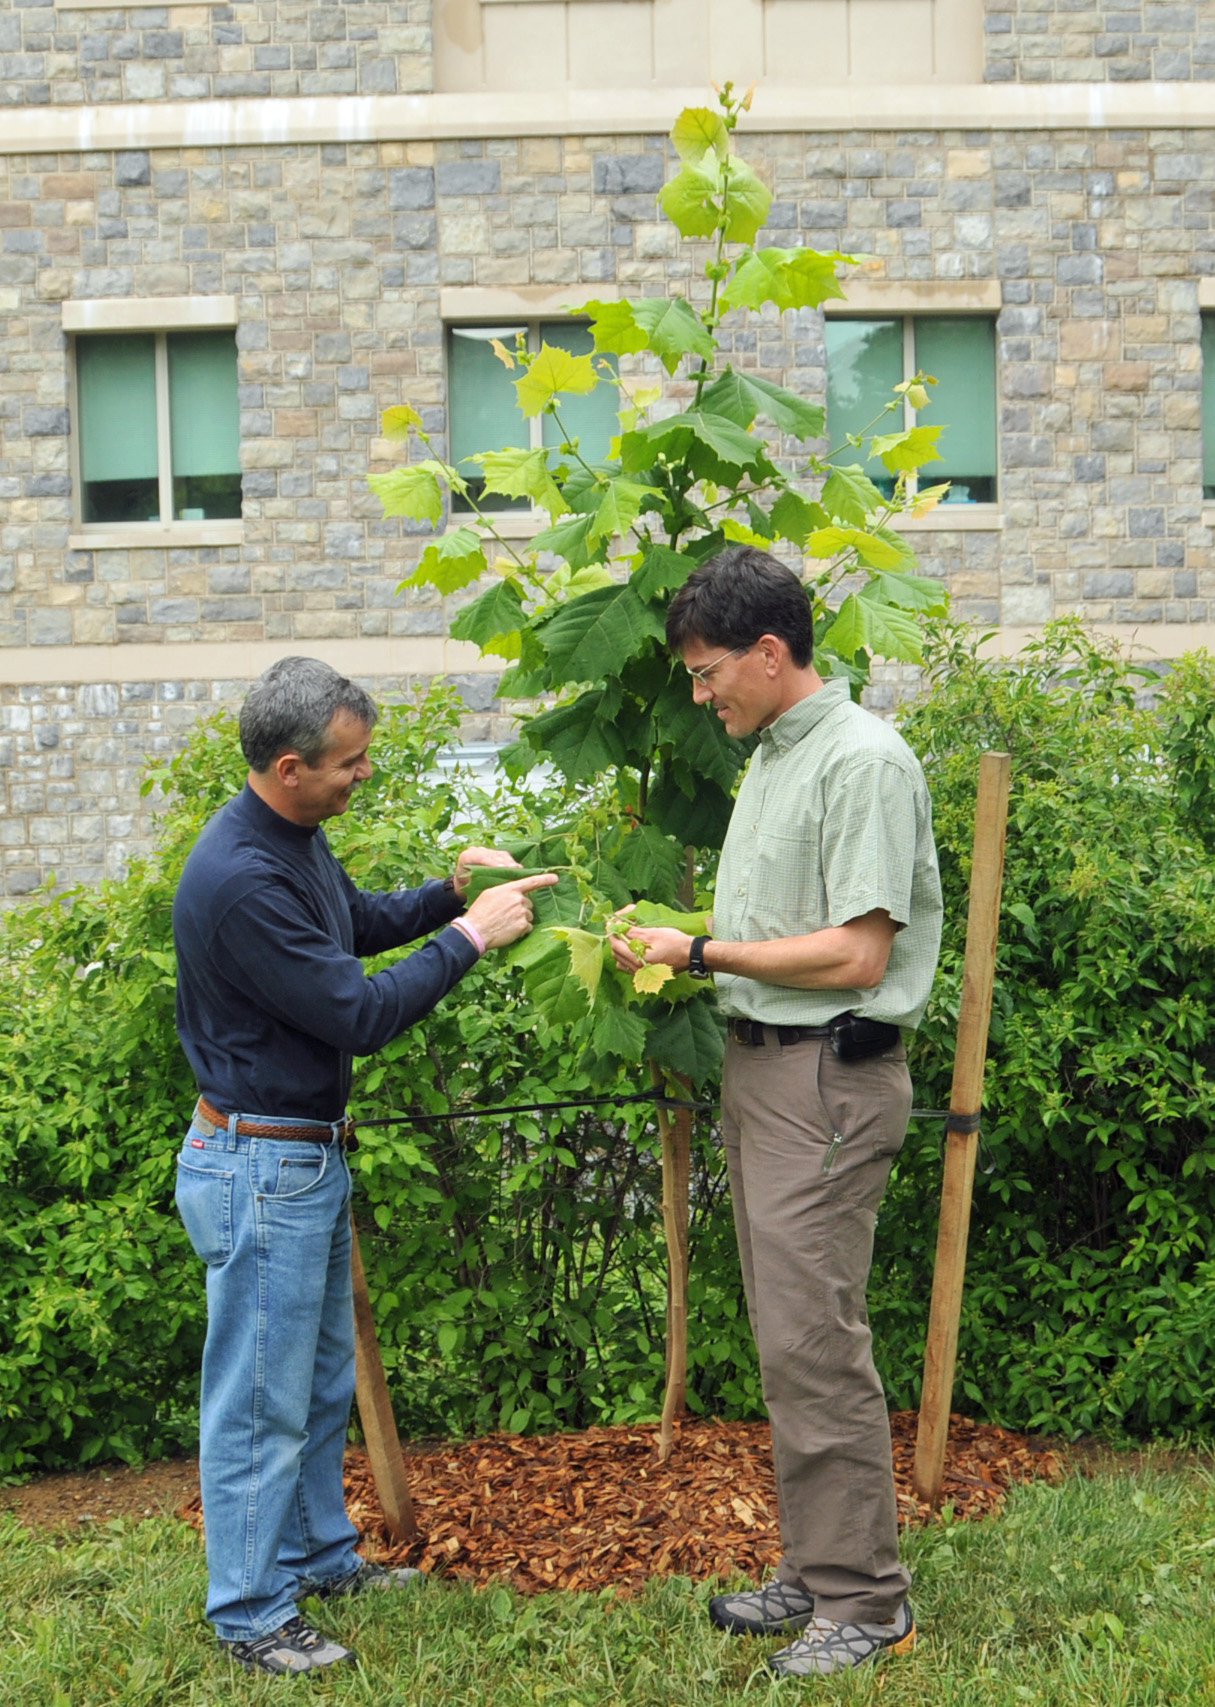 John Seiler and Eric Wiseman standing next to a small tree.